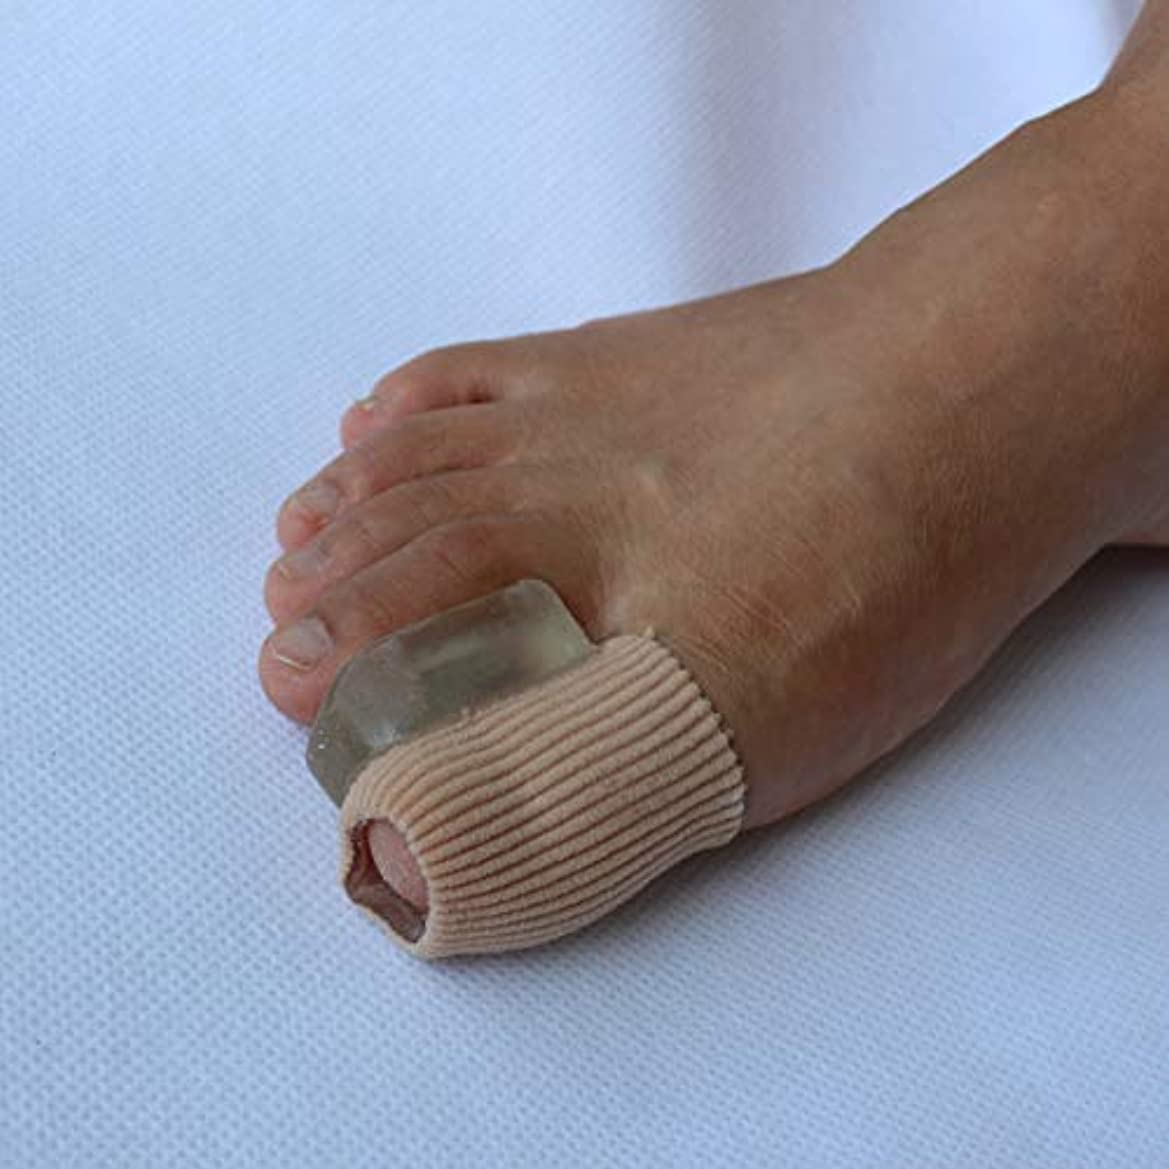 存在月曜日ストレスの多いGel Toe Separators Bunion Corrector for Overlapping Toe Fabric Toe Spacers with Soft Gel Lining for Hallux Valgus